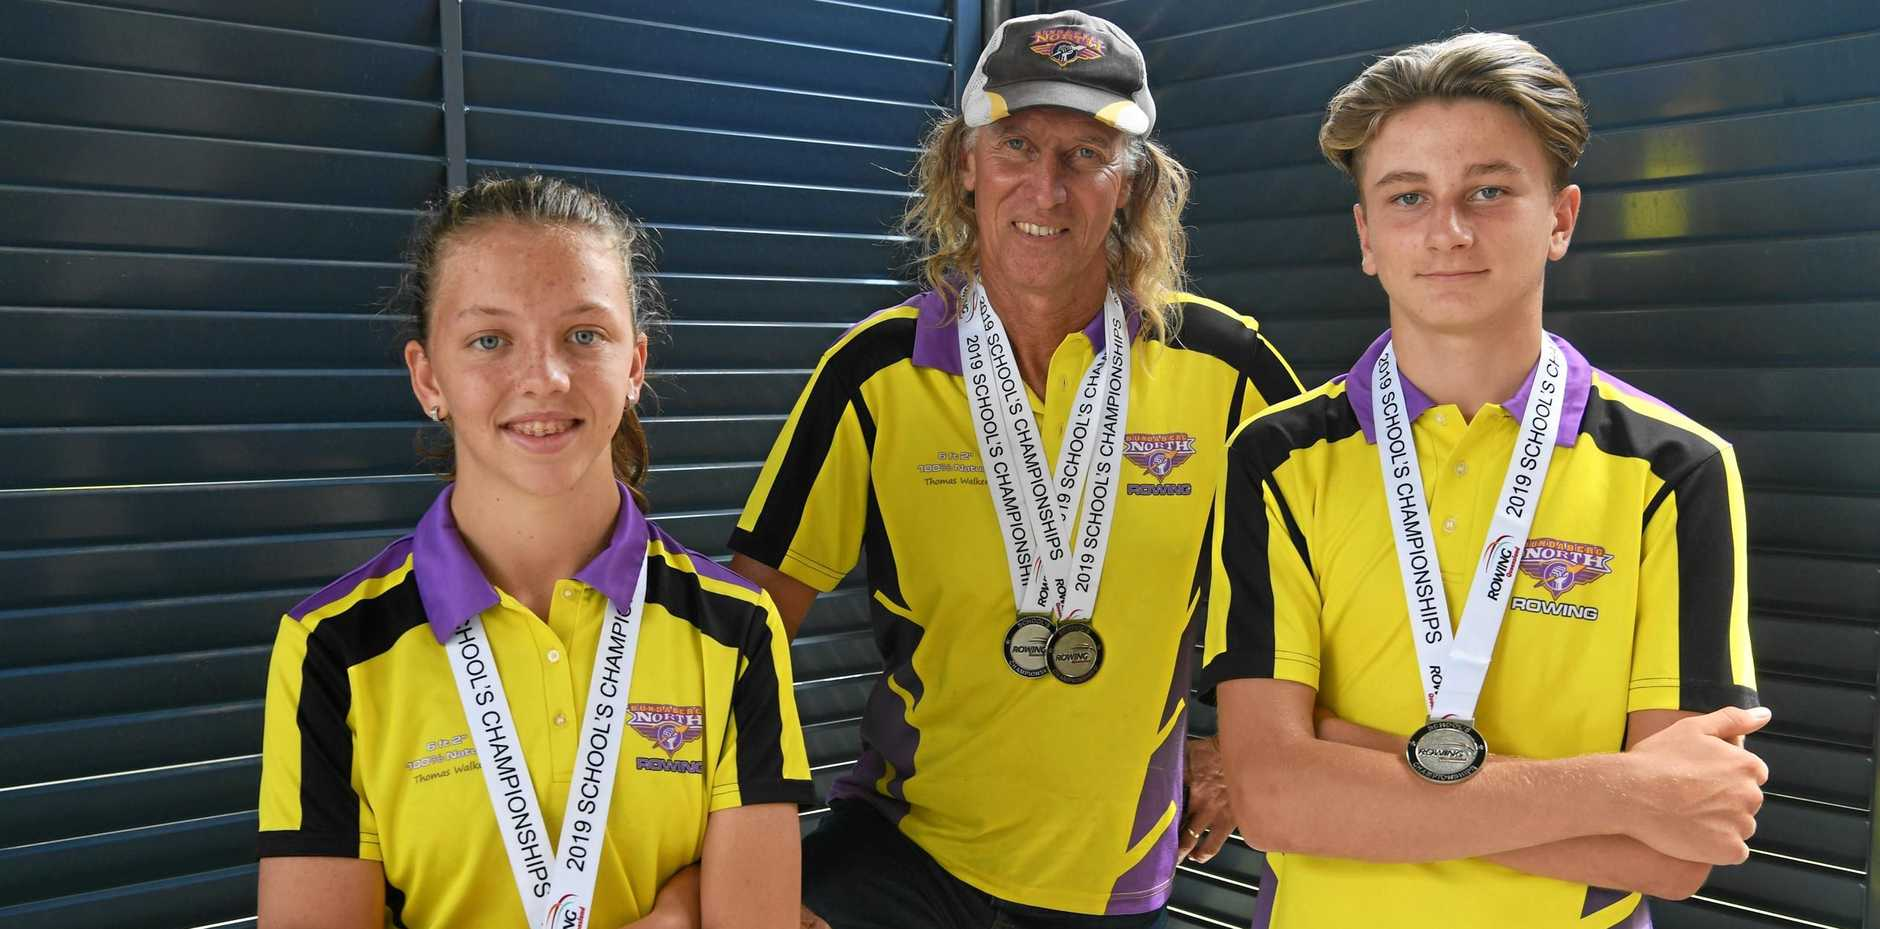 Jayne Wake, coach Tom Laven and Saxon Blair with their medals from the rowing championships.